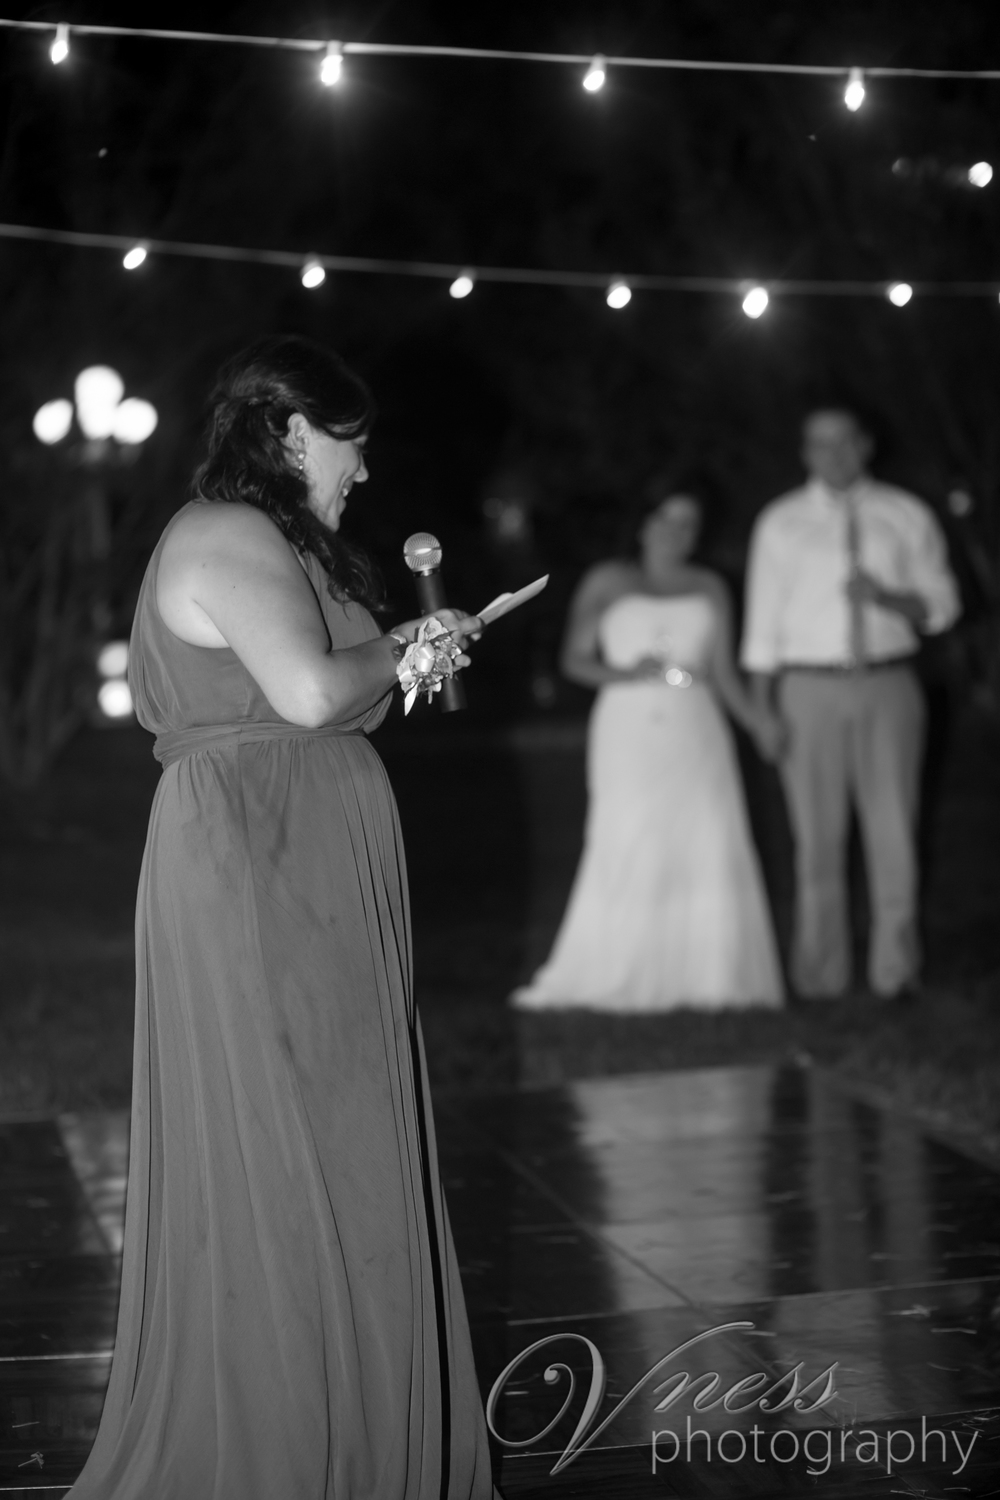 Vnessphotography_Cameron Wedding-264.jpg